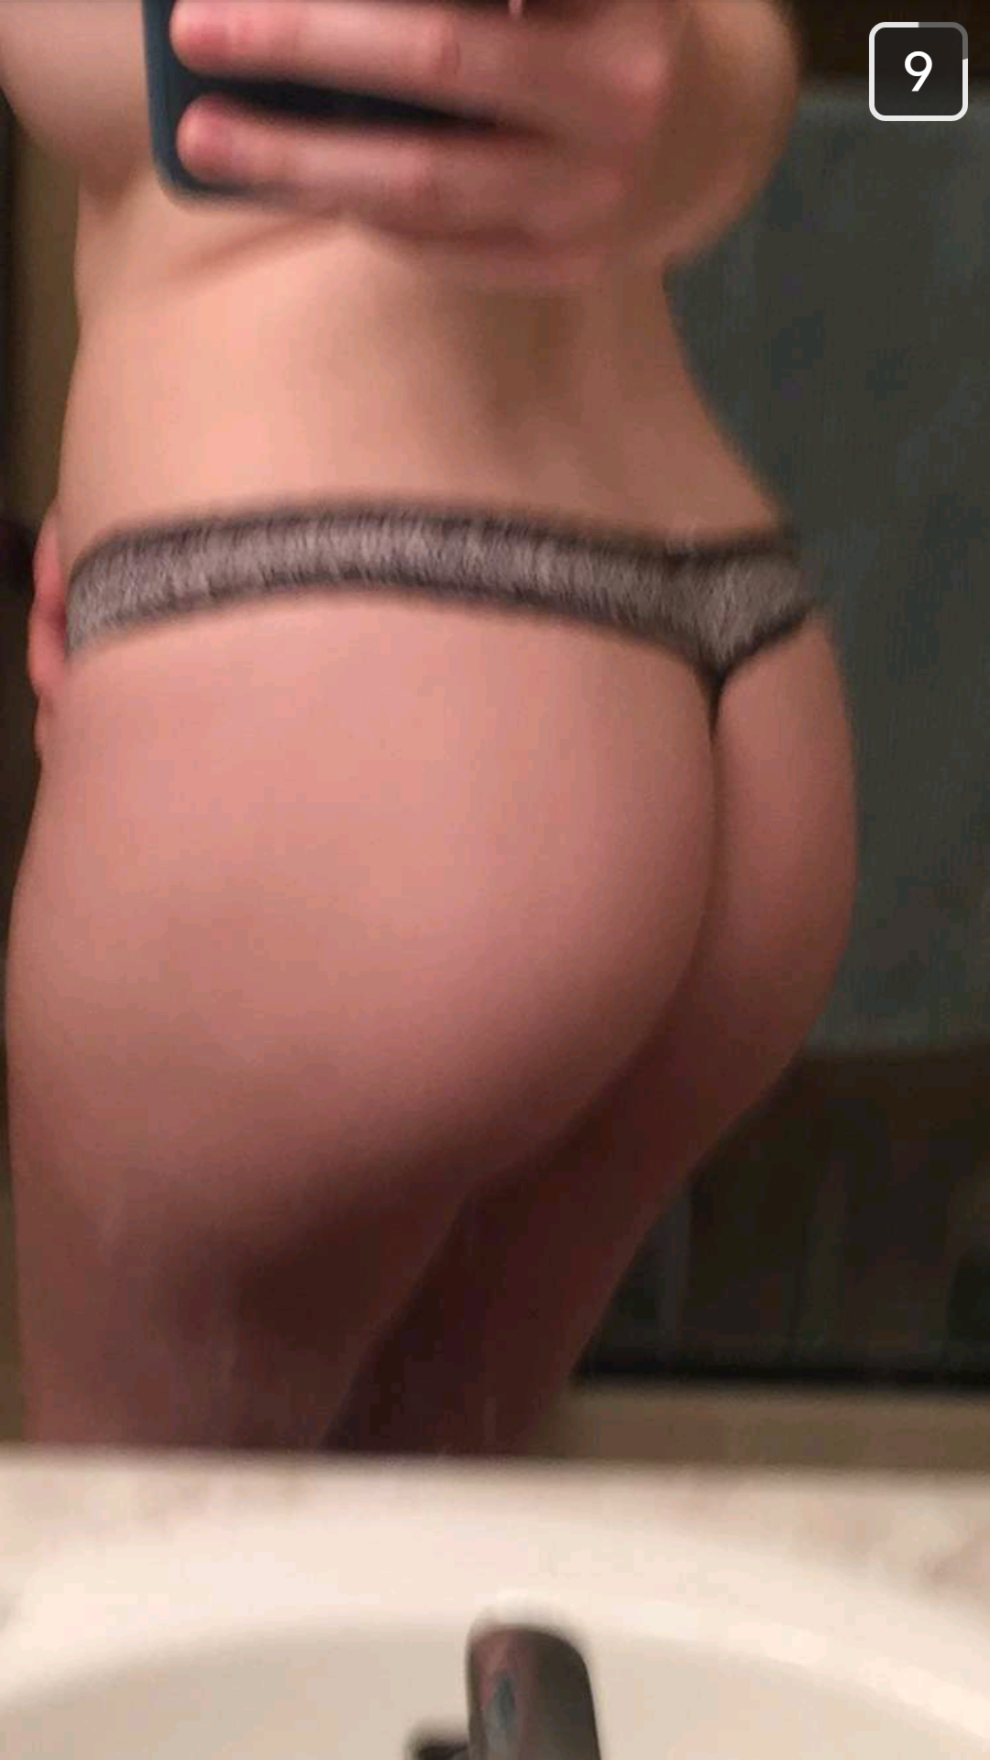 Anyone wanna help me take these off my wi(f)e?